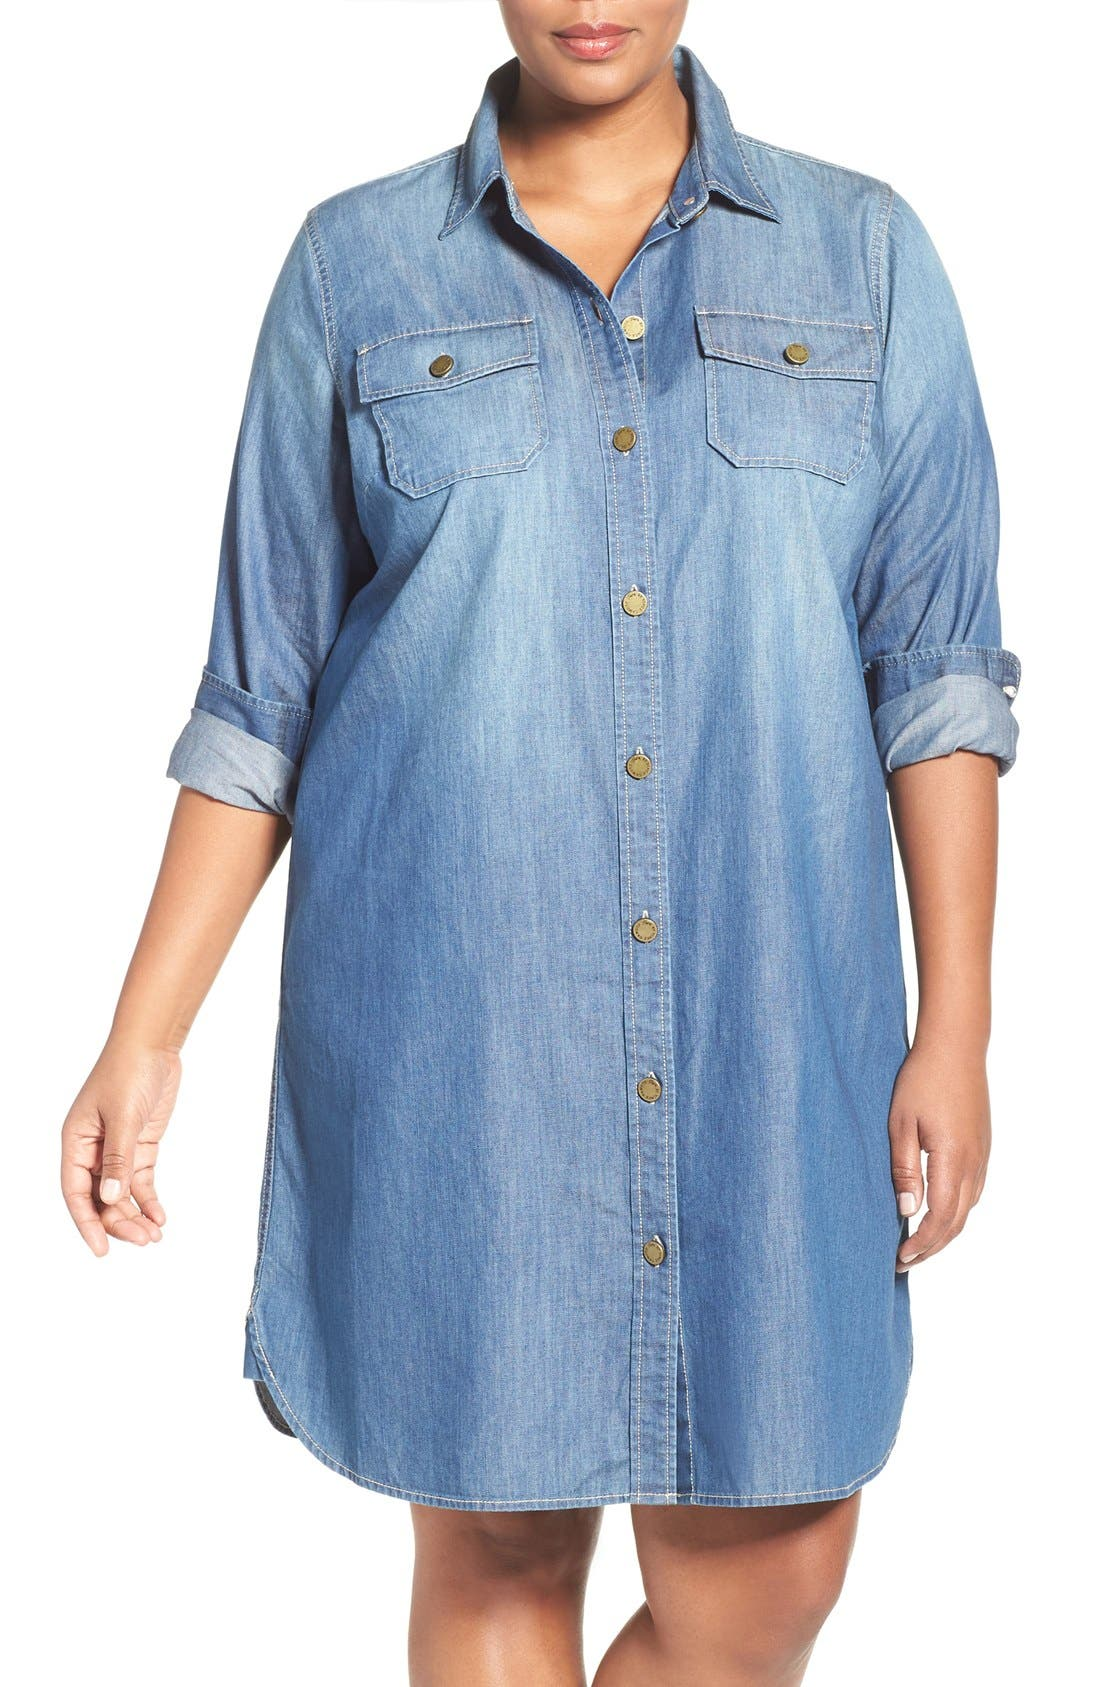 Alternate Image 1 Selected - Two by Vince Camuto Denim Shirtdress (Plus Size)